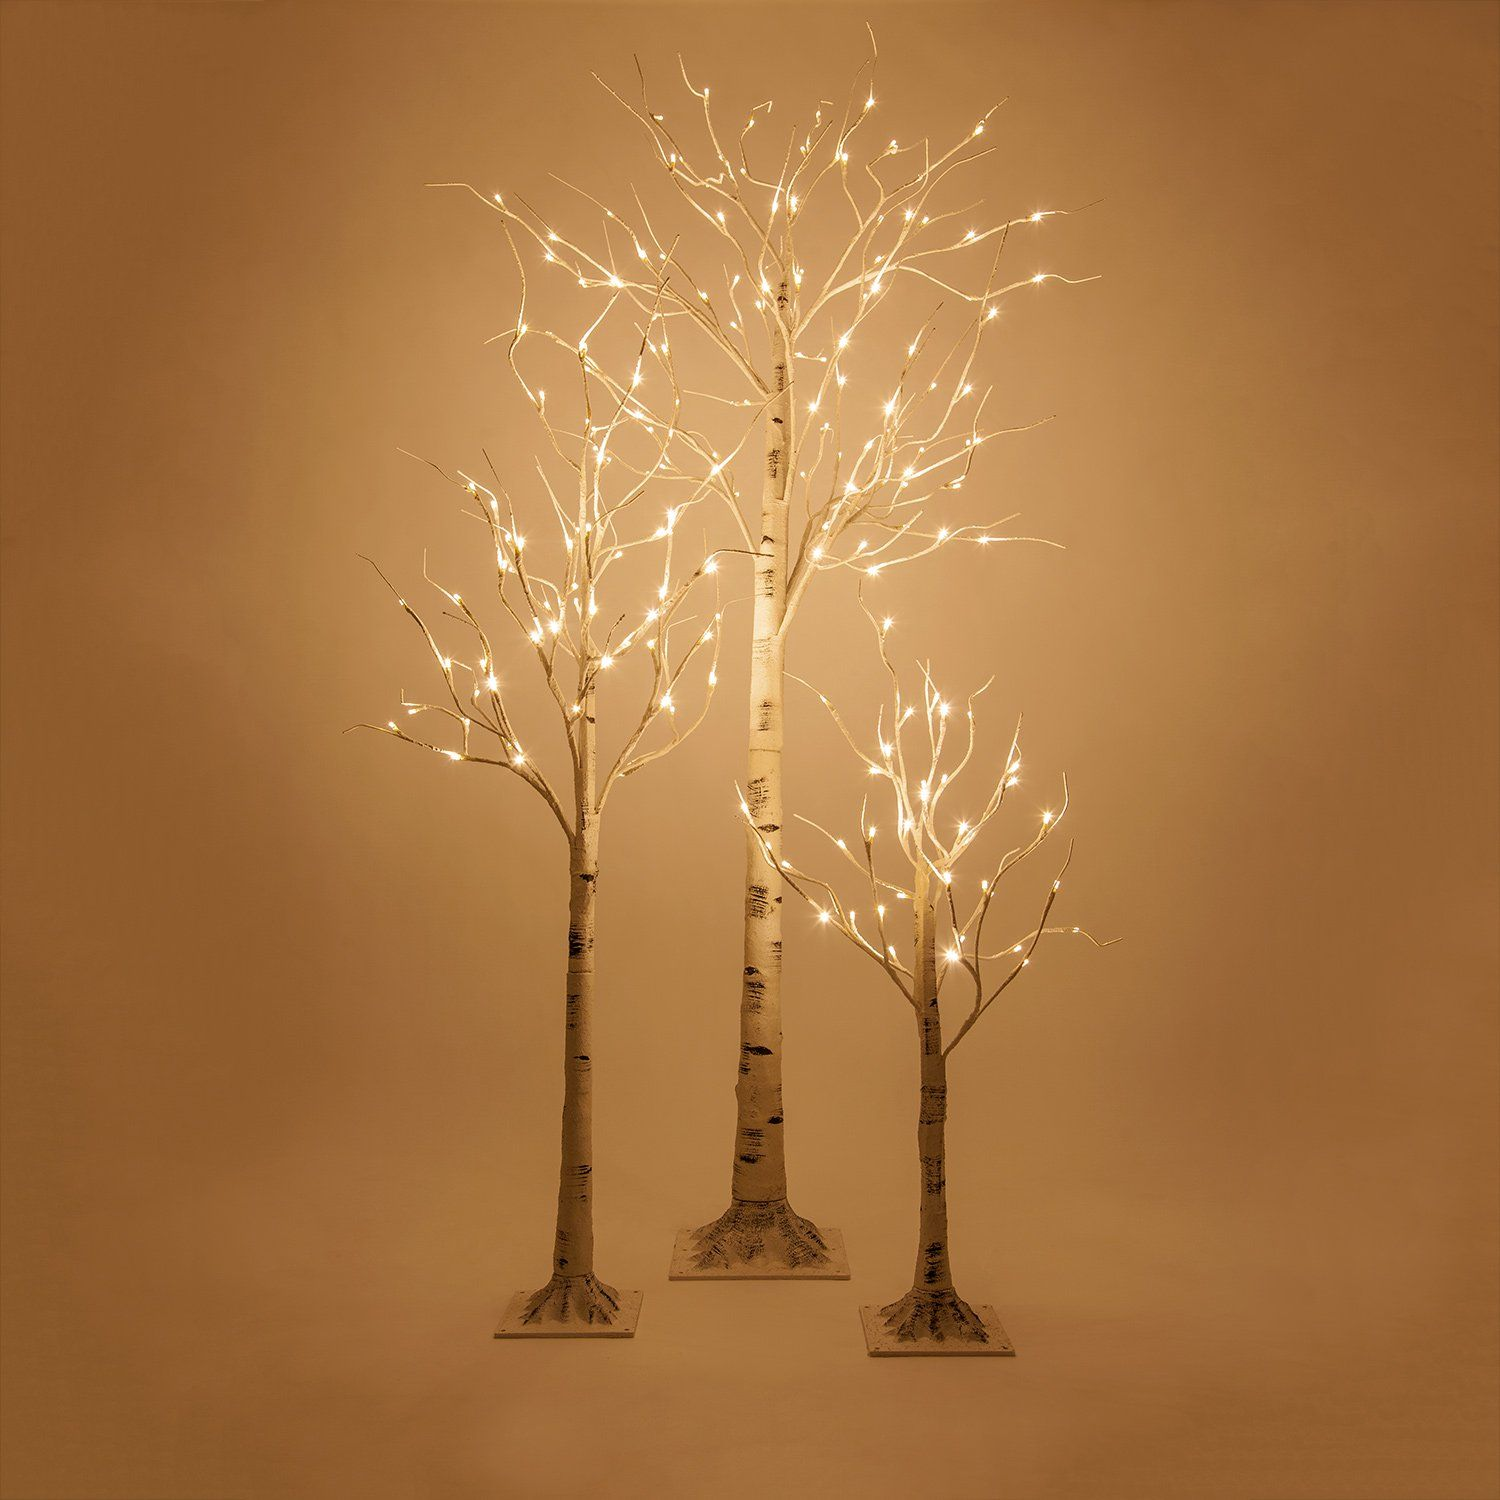 5 Ft Led White Birch Twig Tree Light 60 Warm White Led Lights Flexible Decorative Branches Indoor Covered Outdoor Low Voltage Walmart Com Birch Tree Decor Twig Lights White Birch Trees